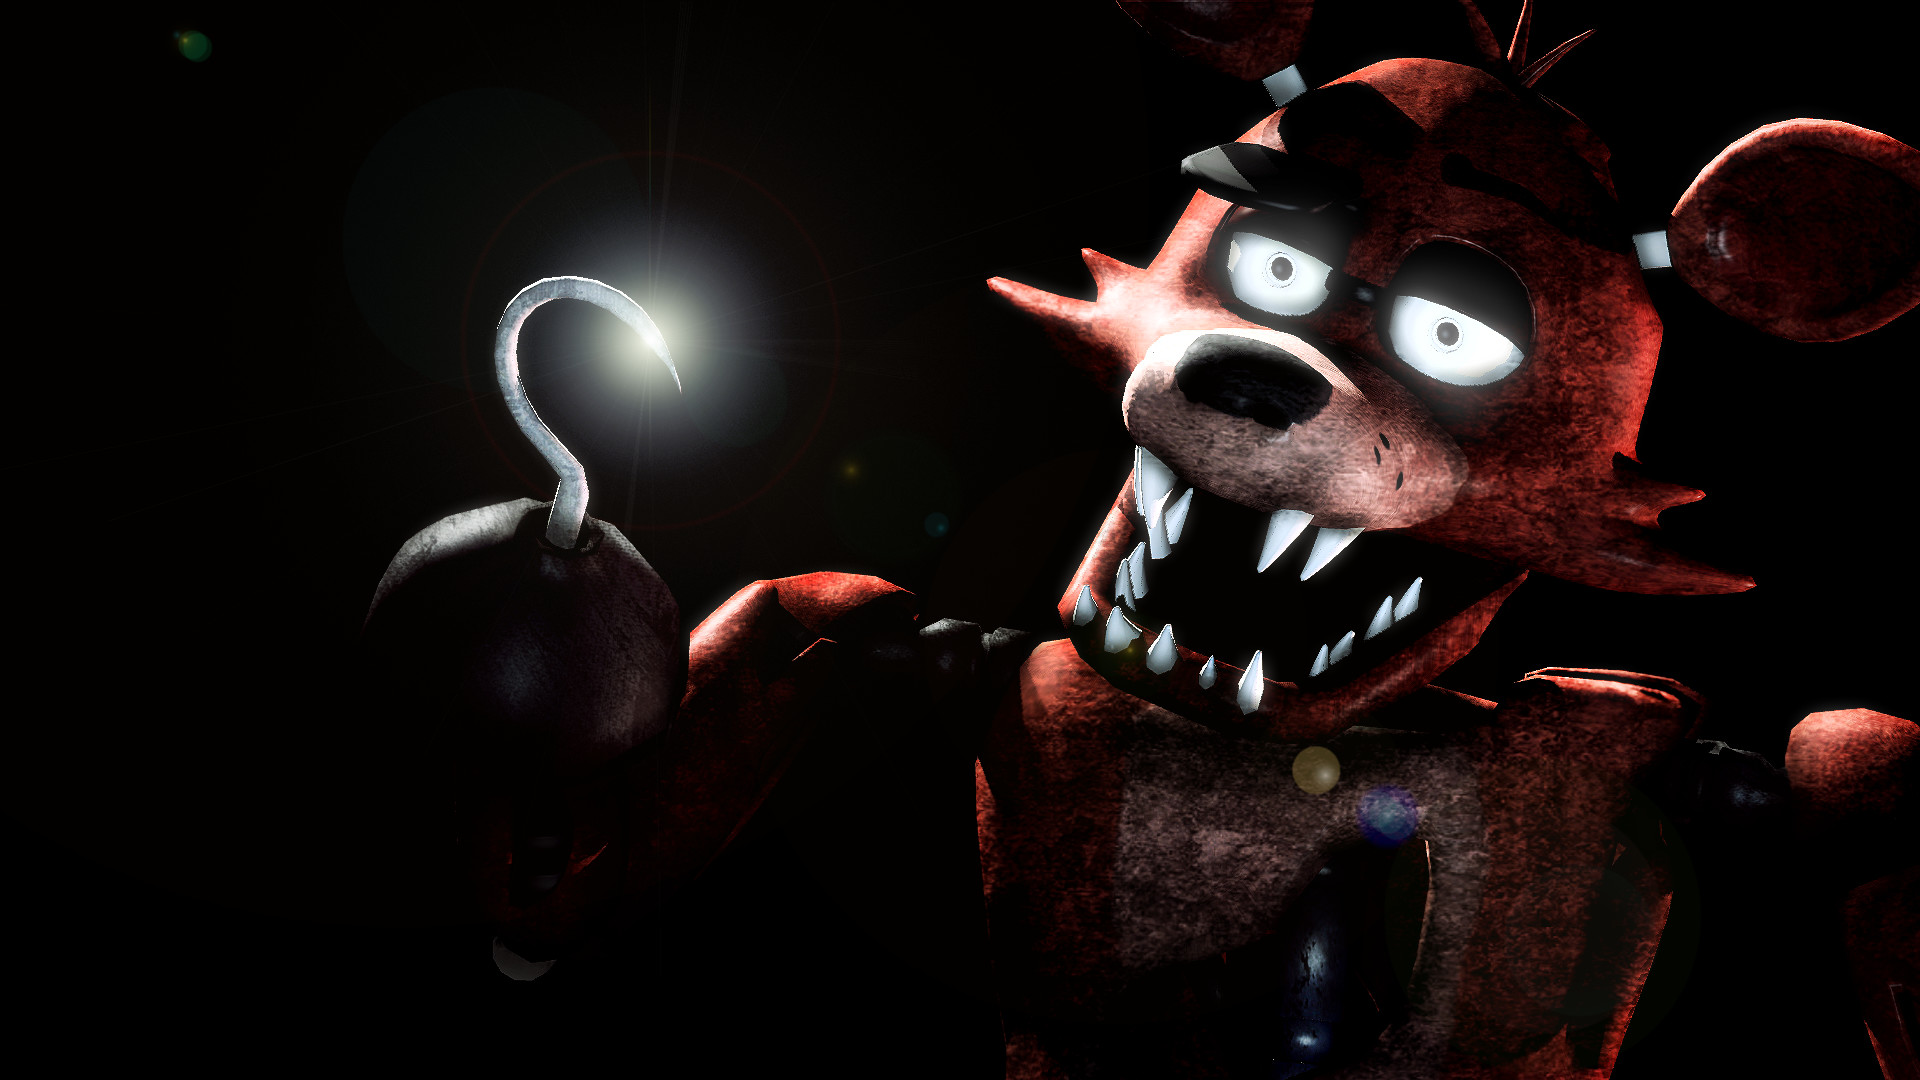 Full HD Wallpapers Foxy The Pirate Fox 1.64 Mb